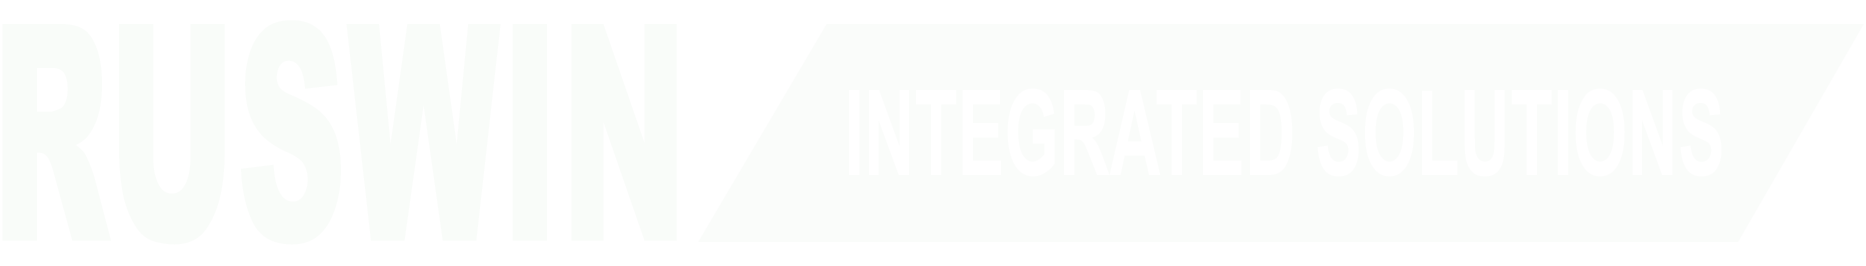 RUSWIN Integrated Solutions